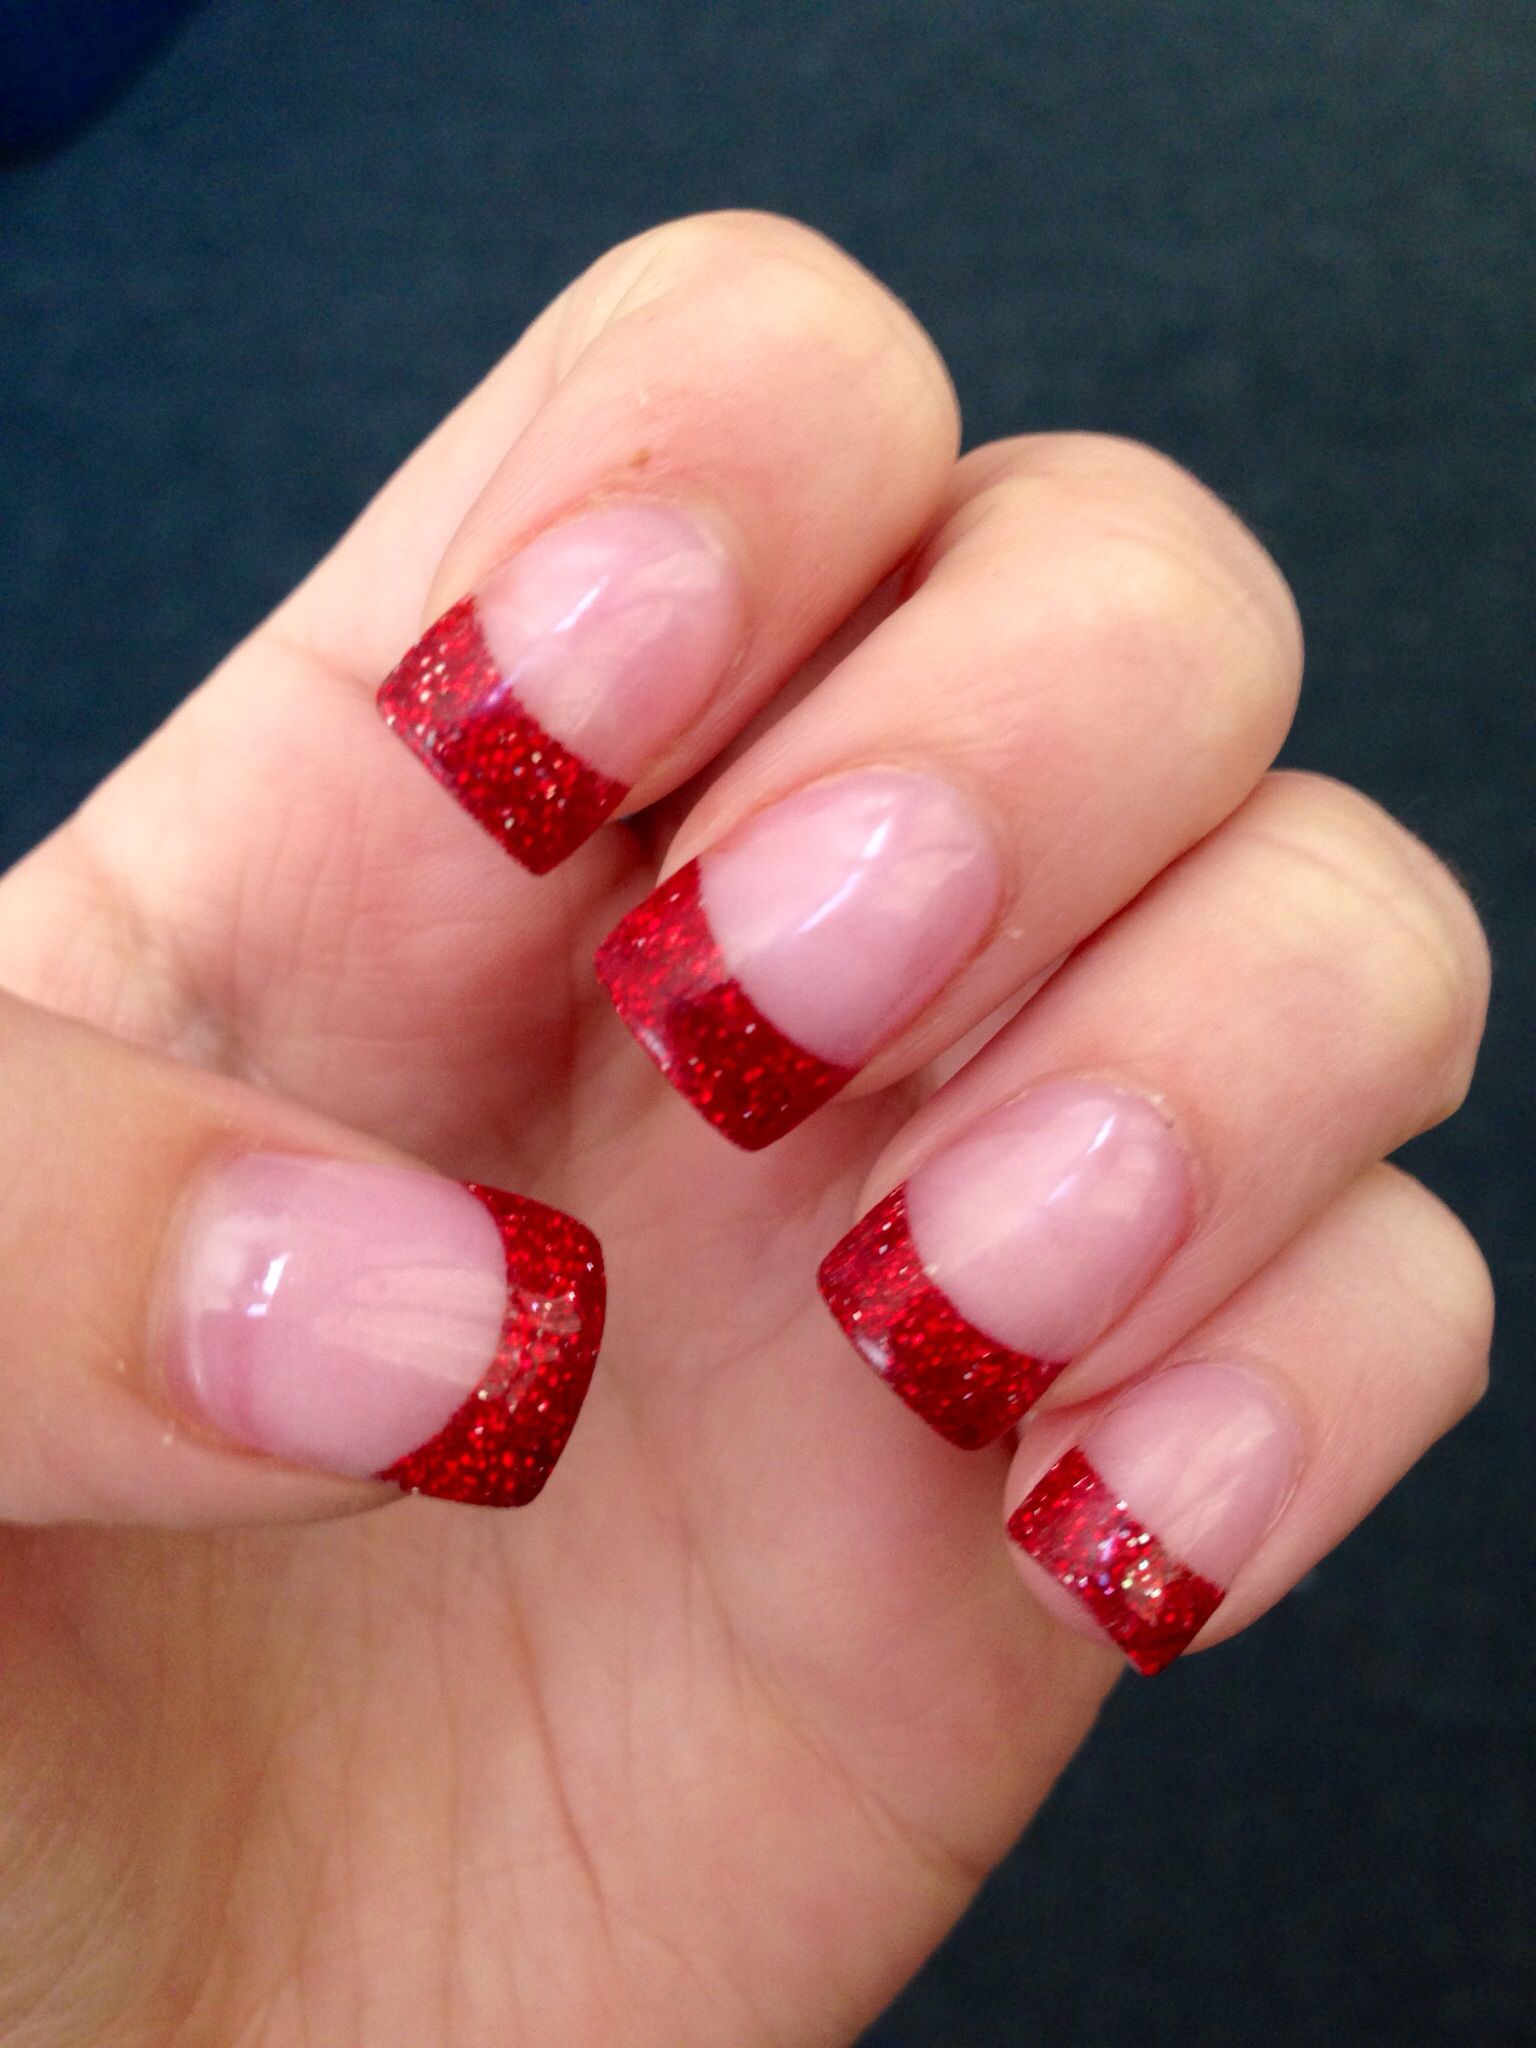 Acrylic holiday nails | Hair & Make-Up | Pinterest | Makeup and Manicure